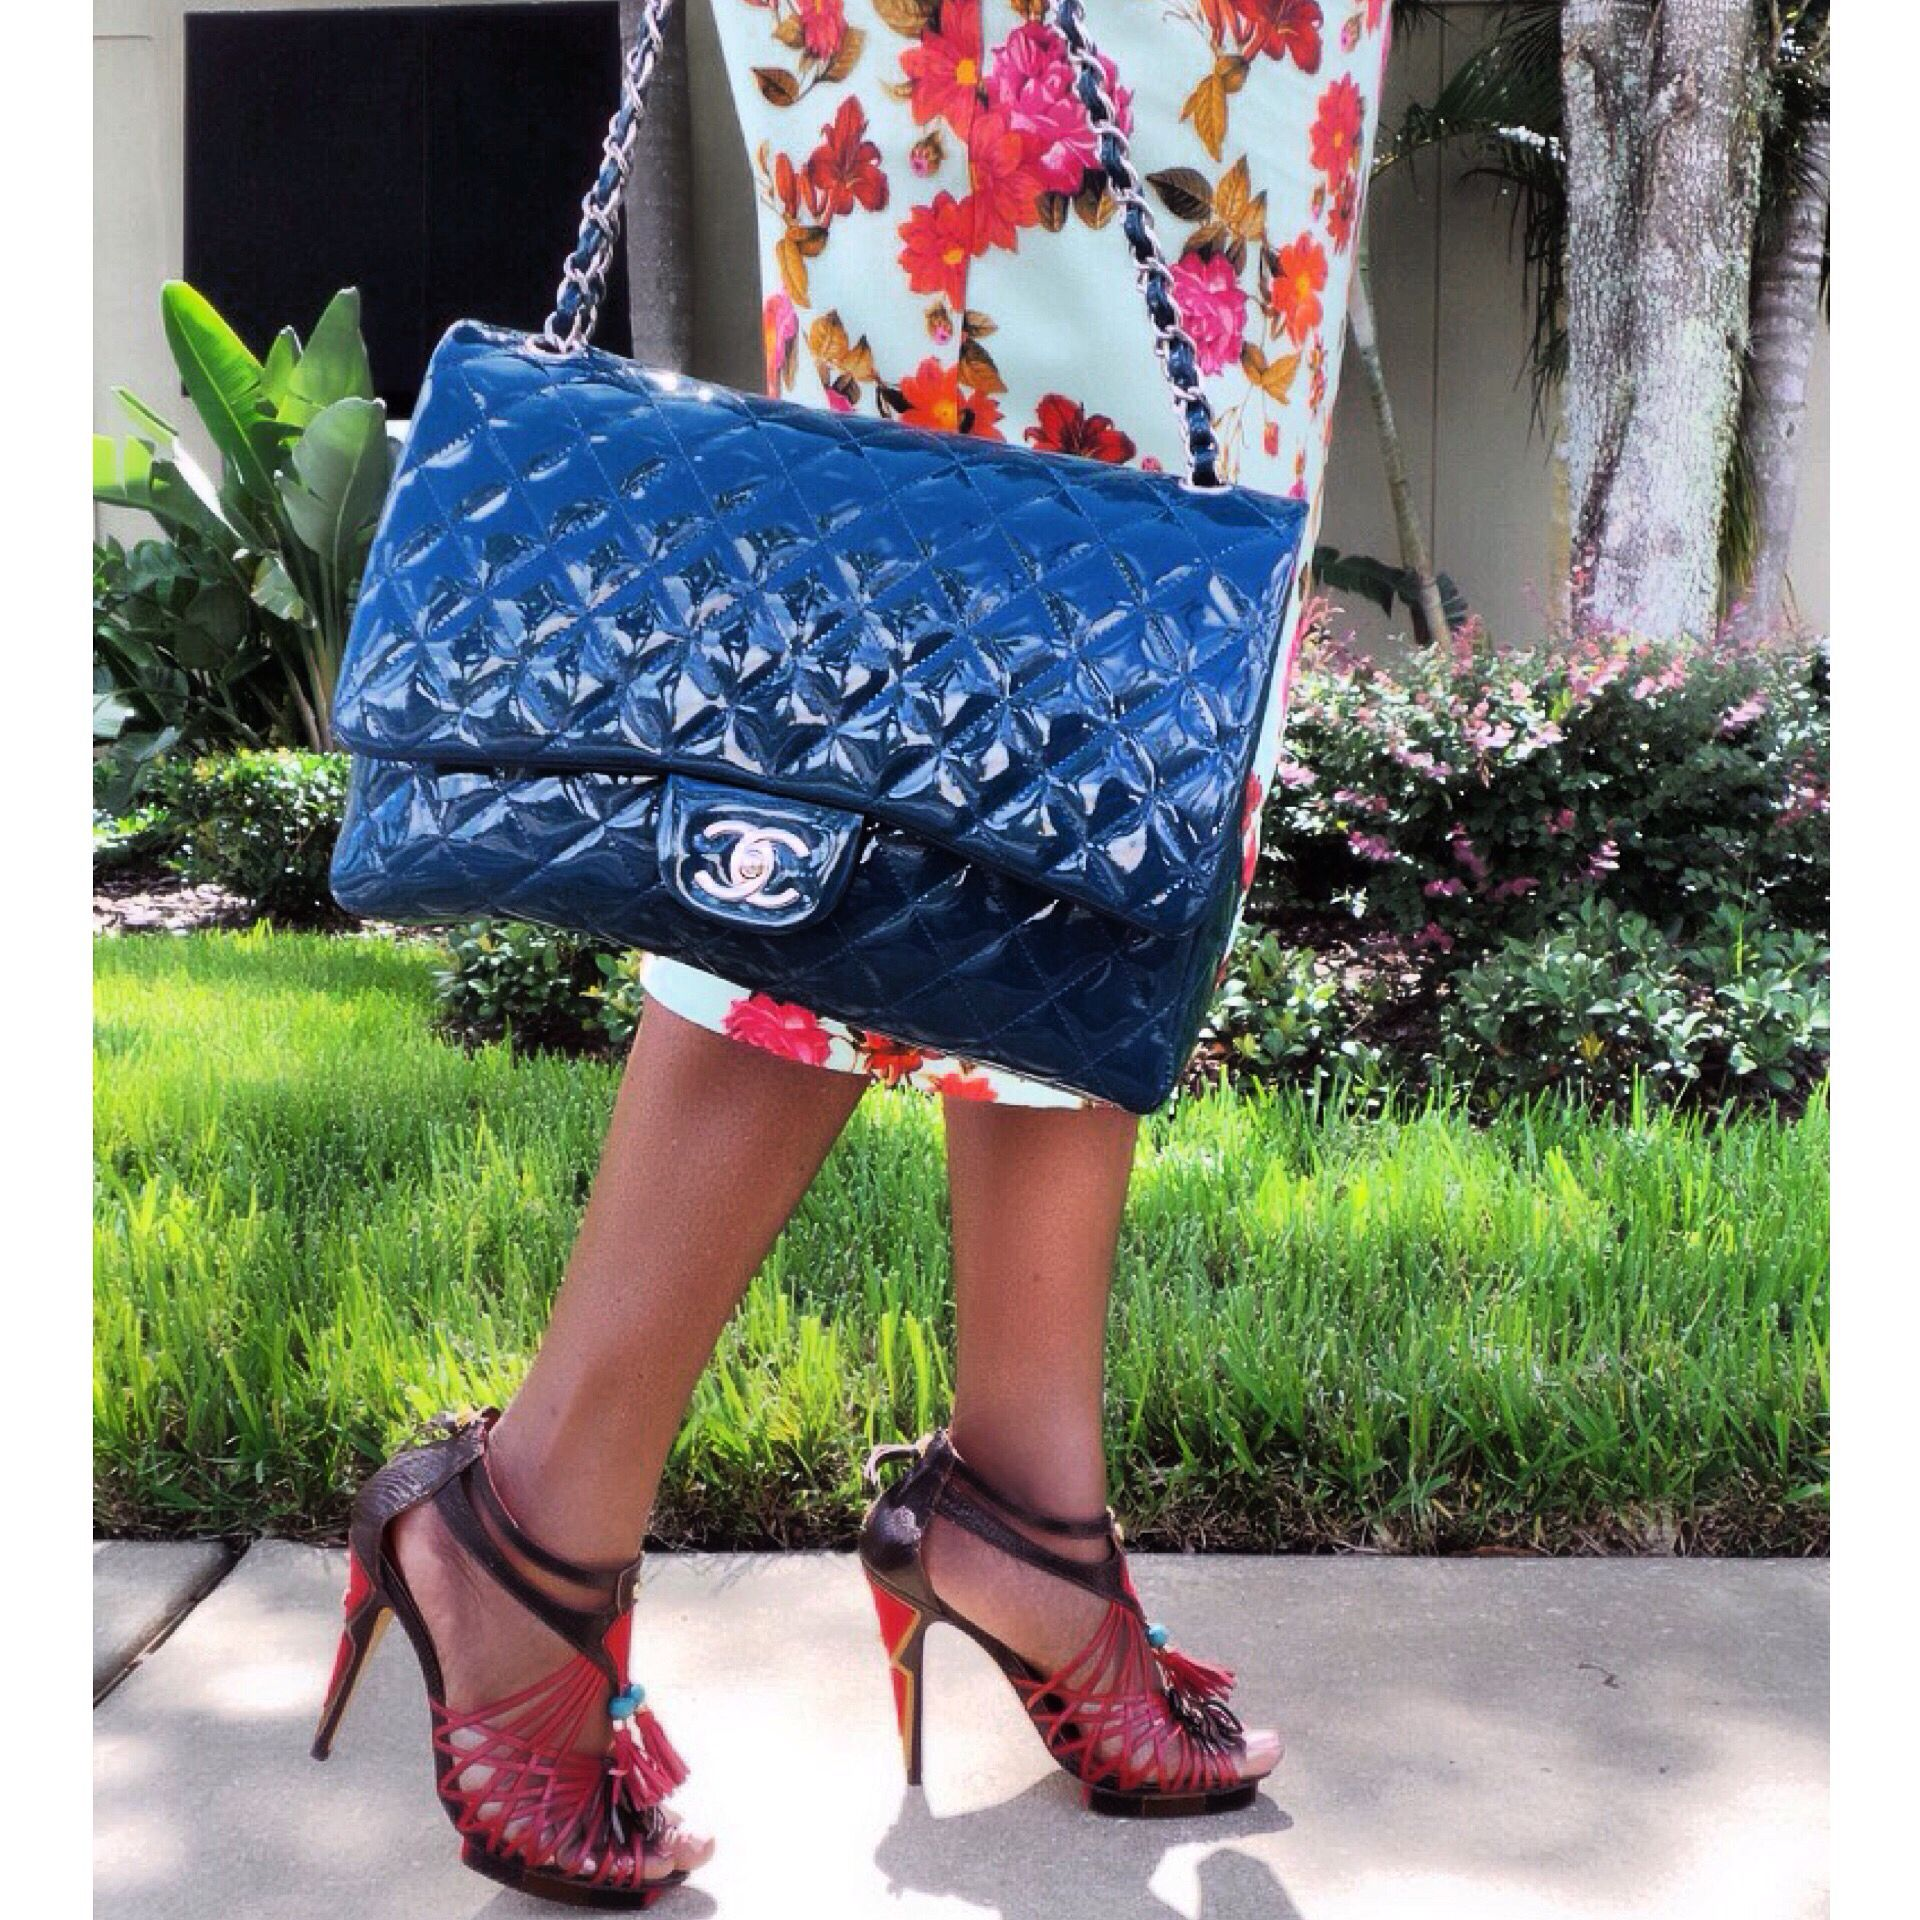 Sunday's details while on the way to Brunch! Chanel bag makes the outfit complete.  #ootd #ootdmagazine #fashion #fashionshot #fashionblogger #fashionblog #streetstyle #chanel #styleshoppe #accessories #lotd #lookmazing #everydaylookers #ilovefashionbloggers #bgkionline #whatimwearing #picoftheday #sundaybrunch #sundayservice #girlswhobrunch #family